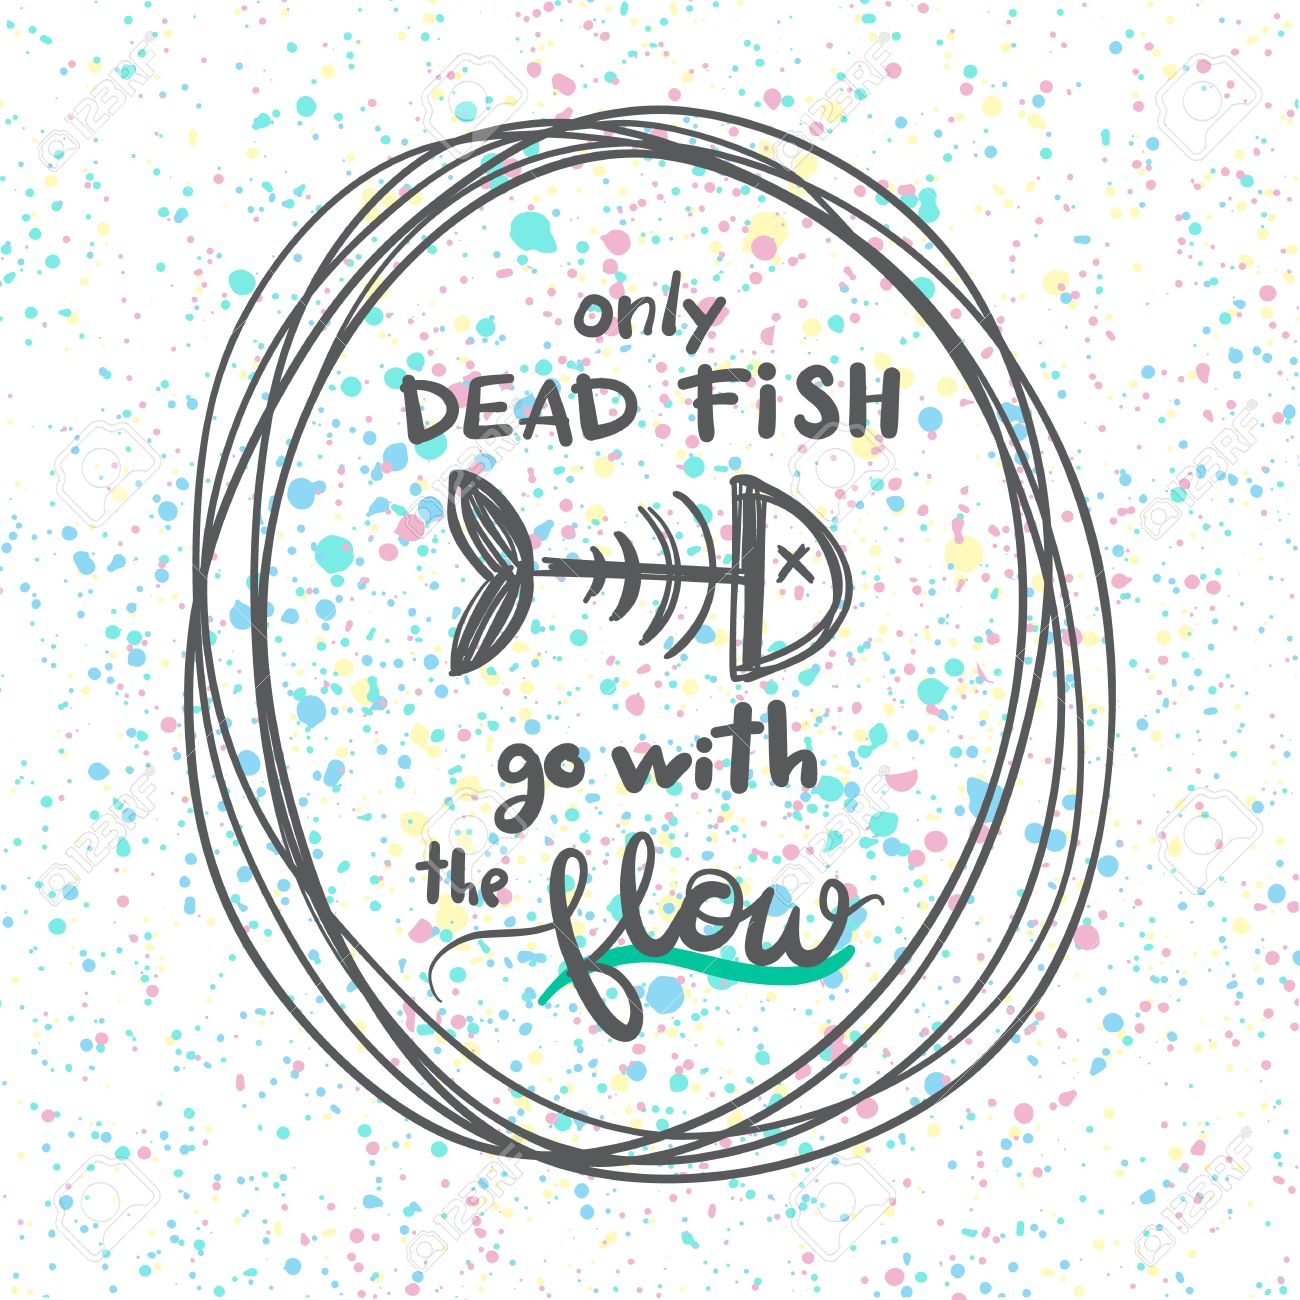 Only Dead Fish Go With The Flow Motivational Quote Typography Royalty Free Cliparts Vectors And Stock Illustration Image 58764214